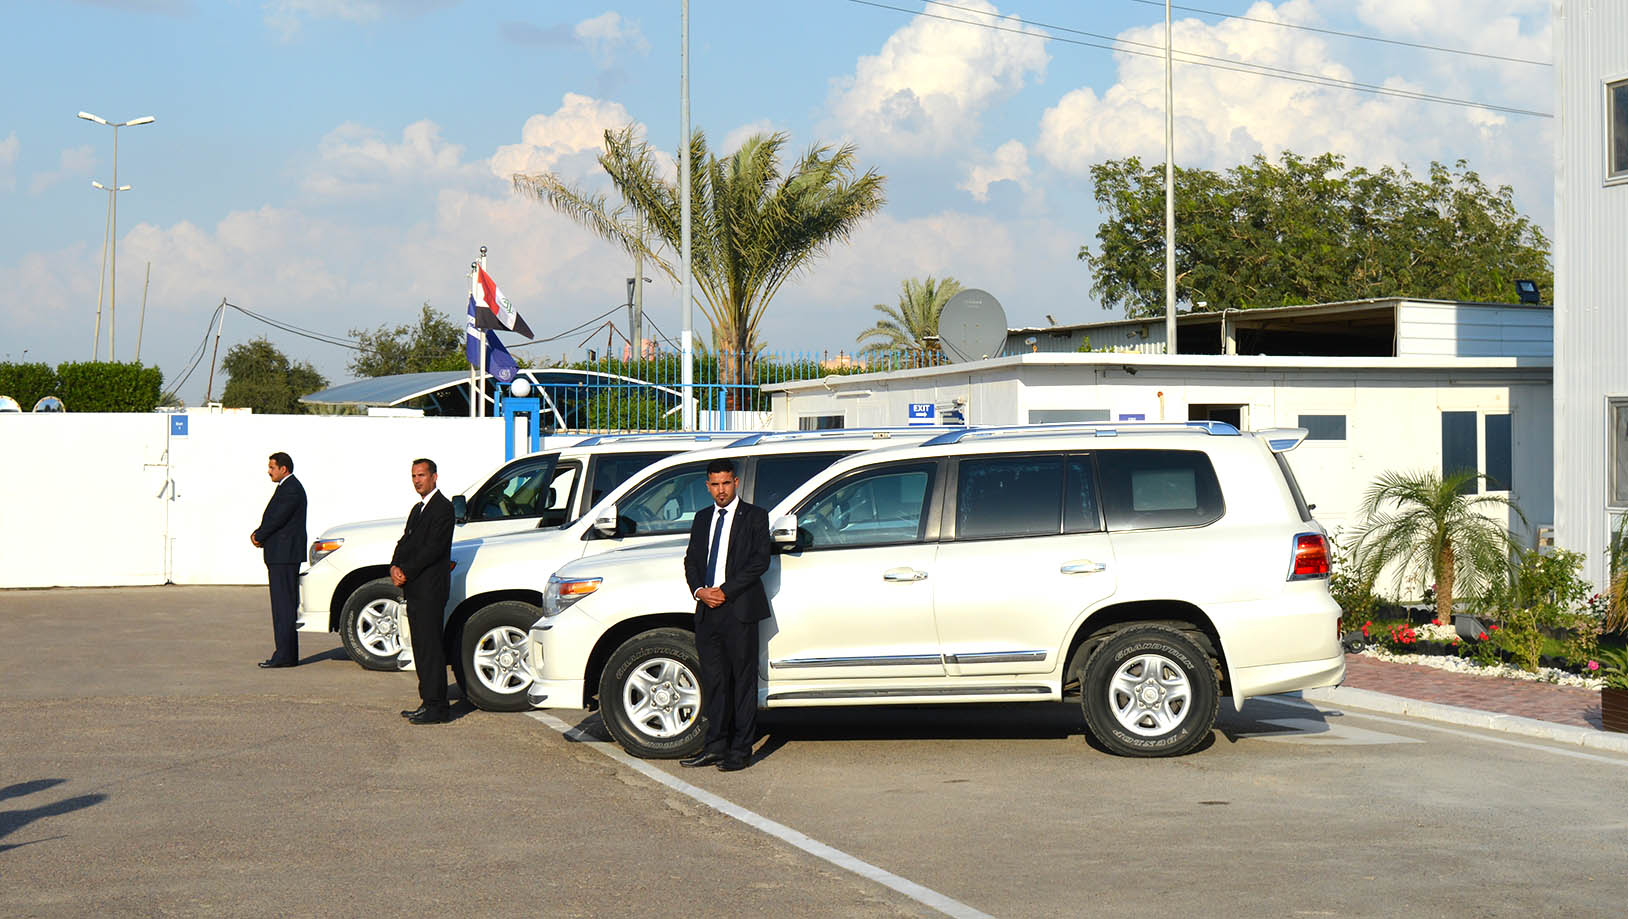 ABS protects VIP during Iraq visit